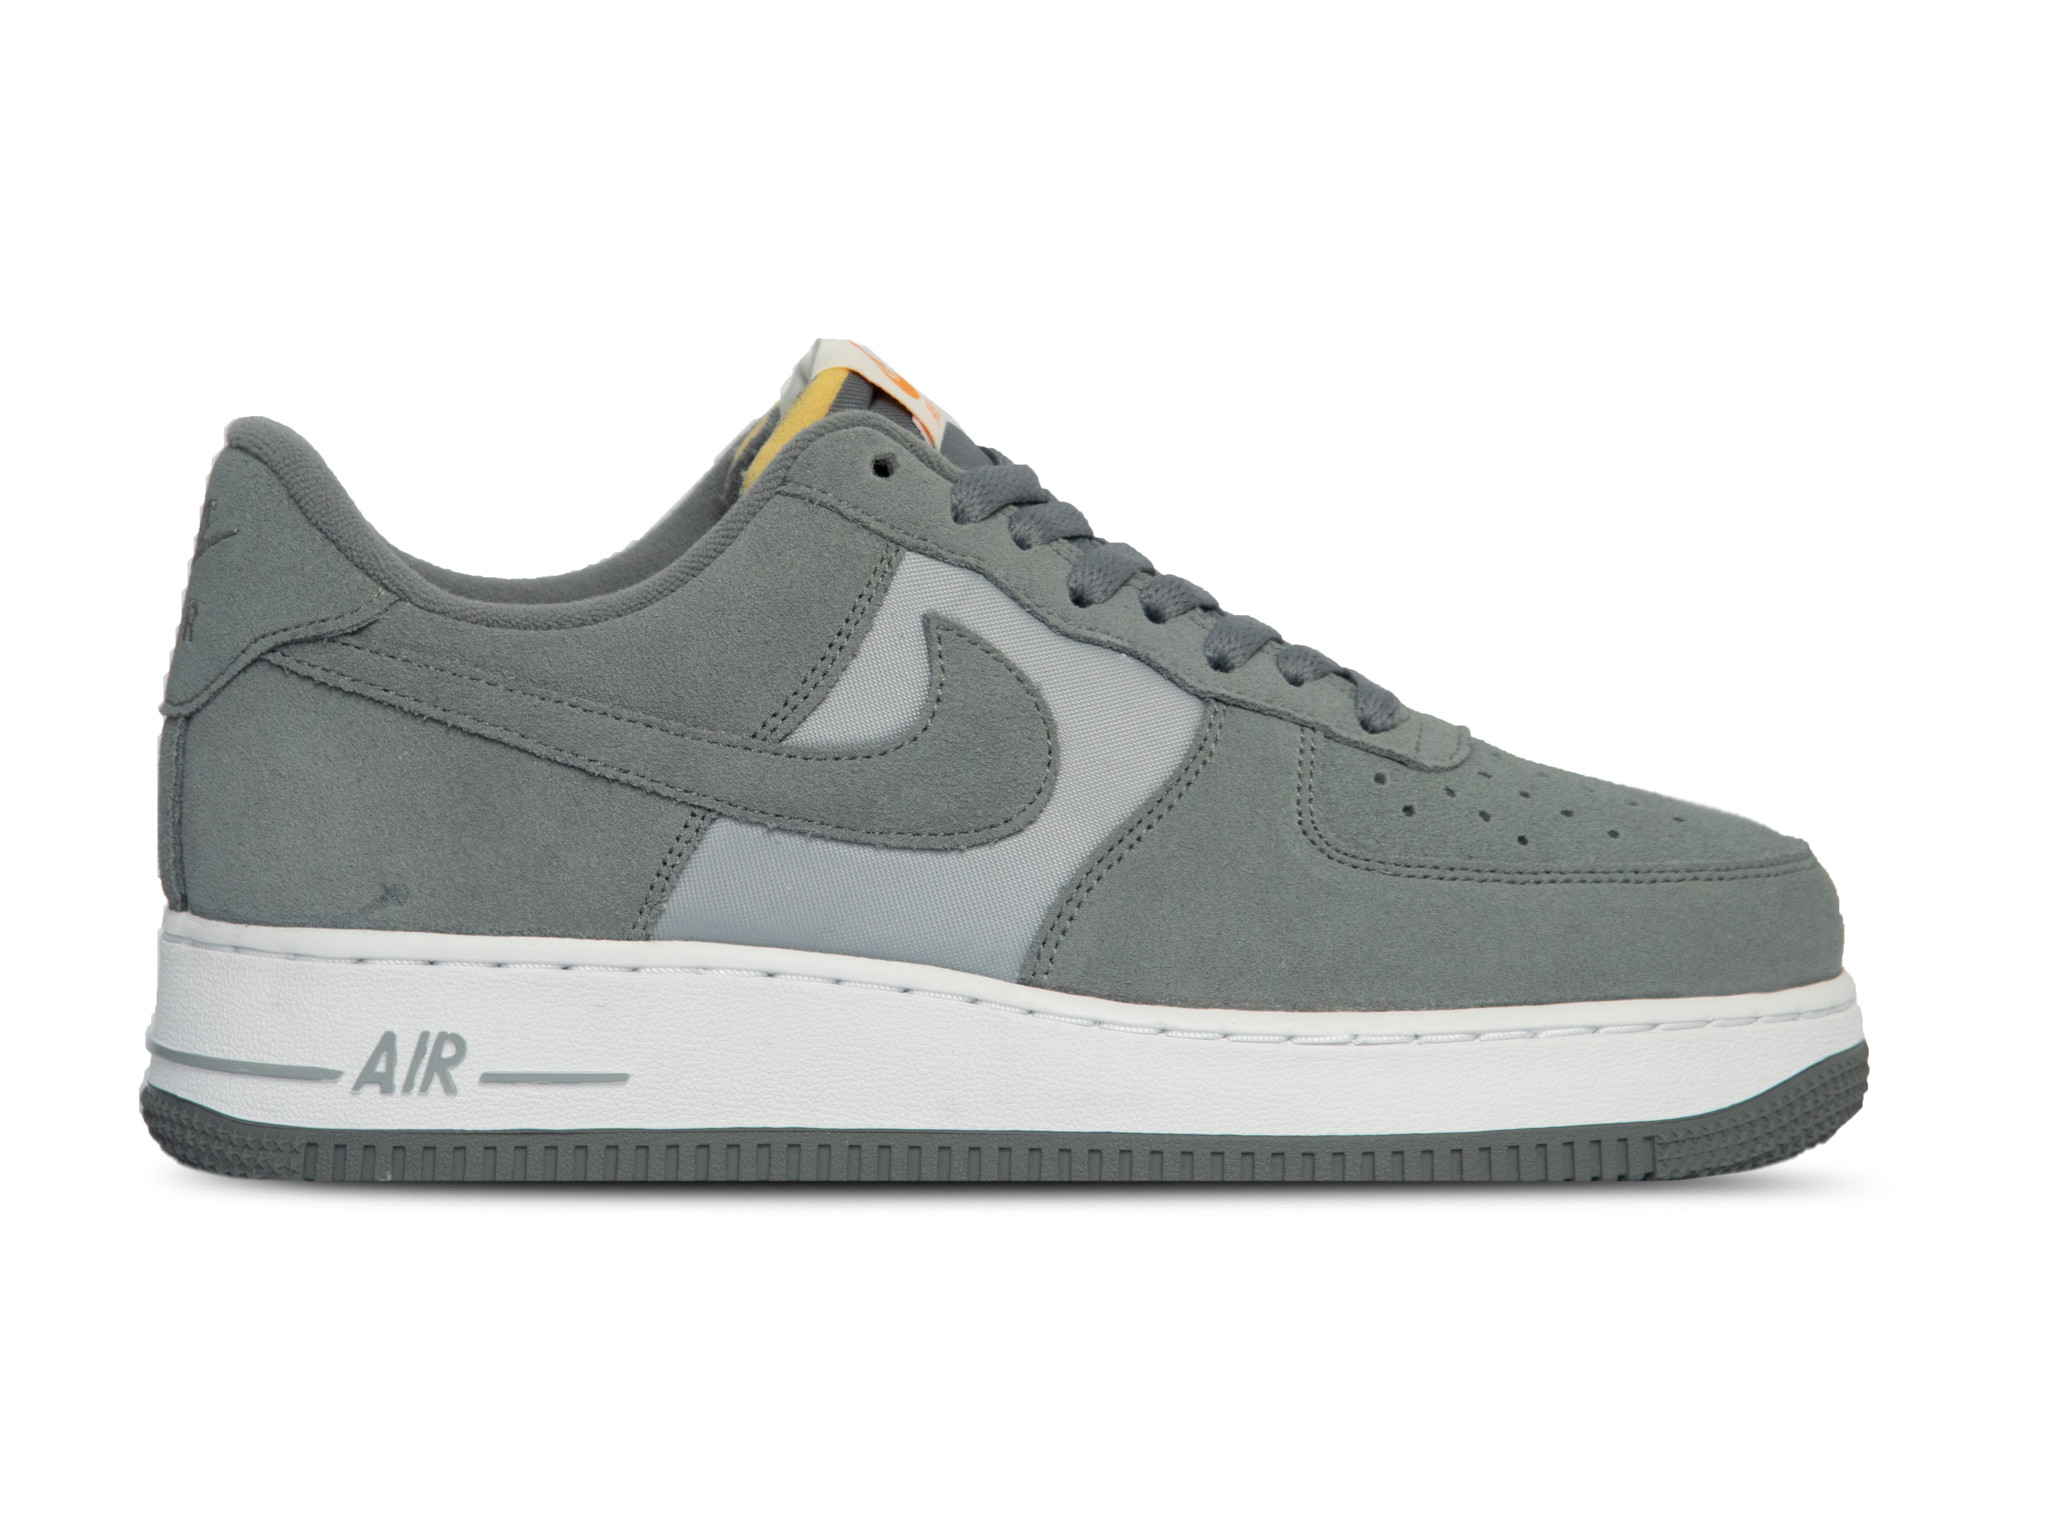 official supplier cheaper buy best Air Force 1 '07 LV8 Cool Grey Bright Ceramic White CI2677 ...